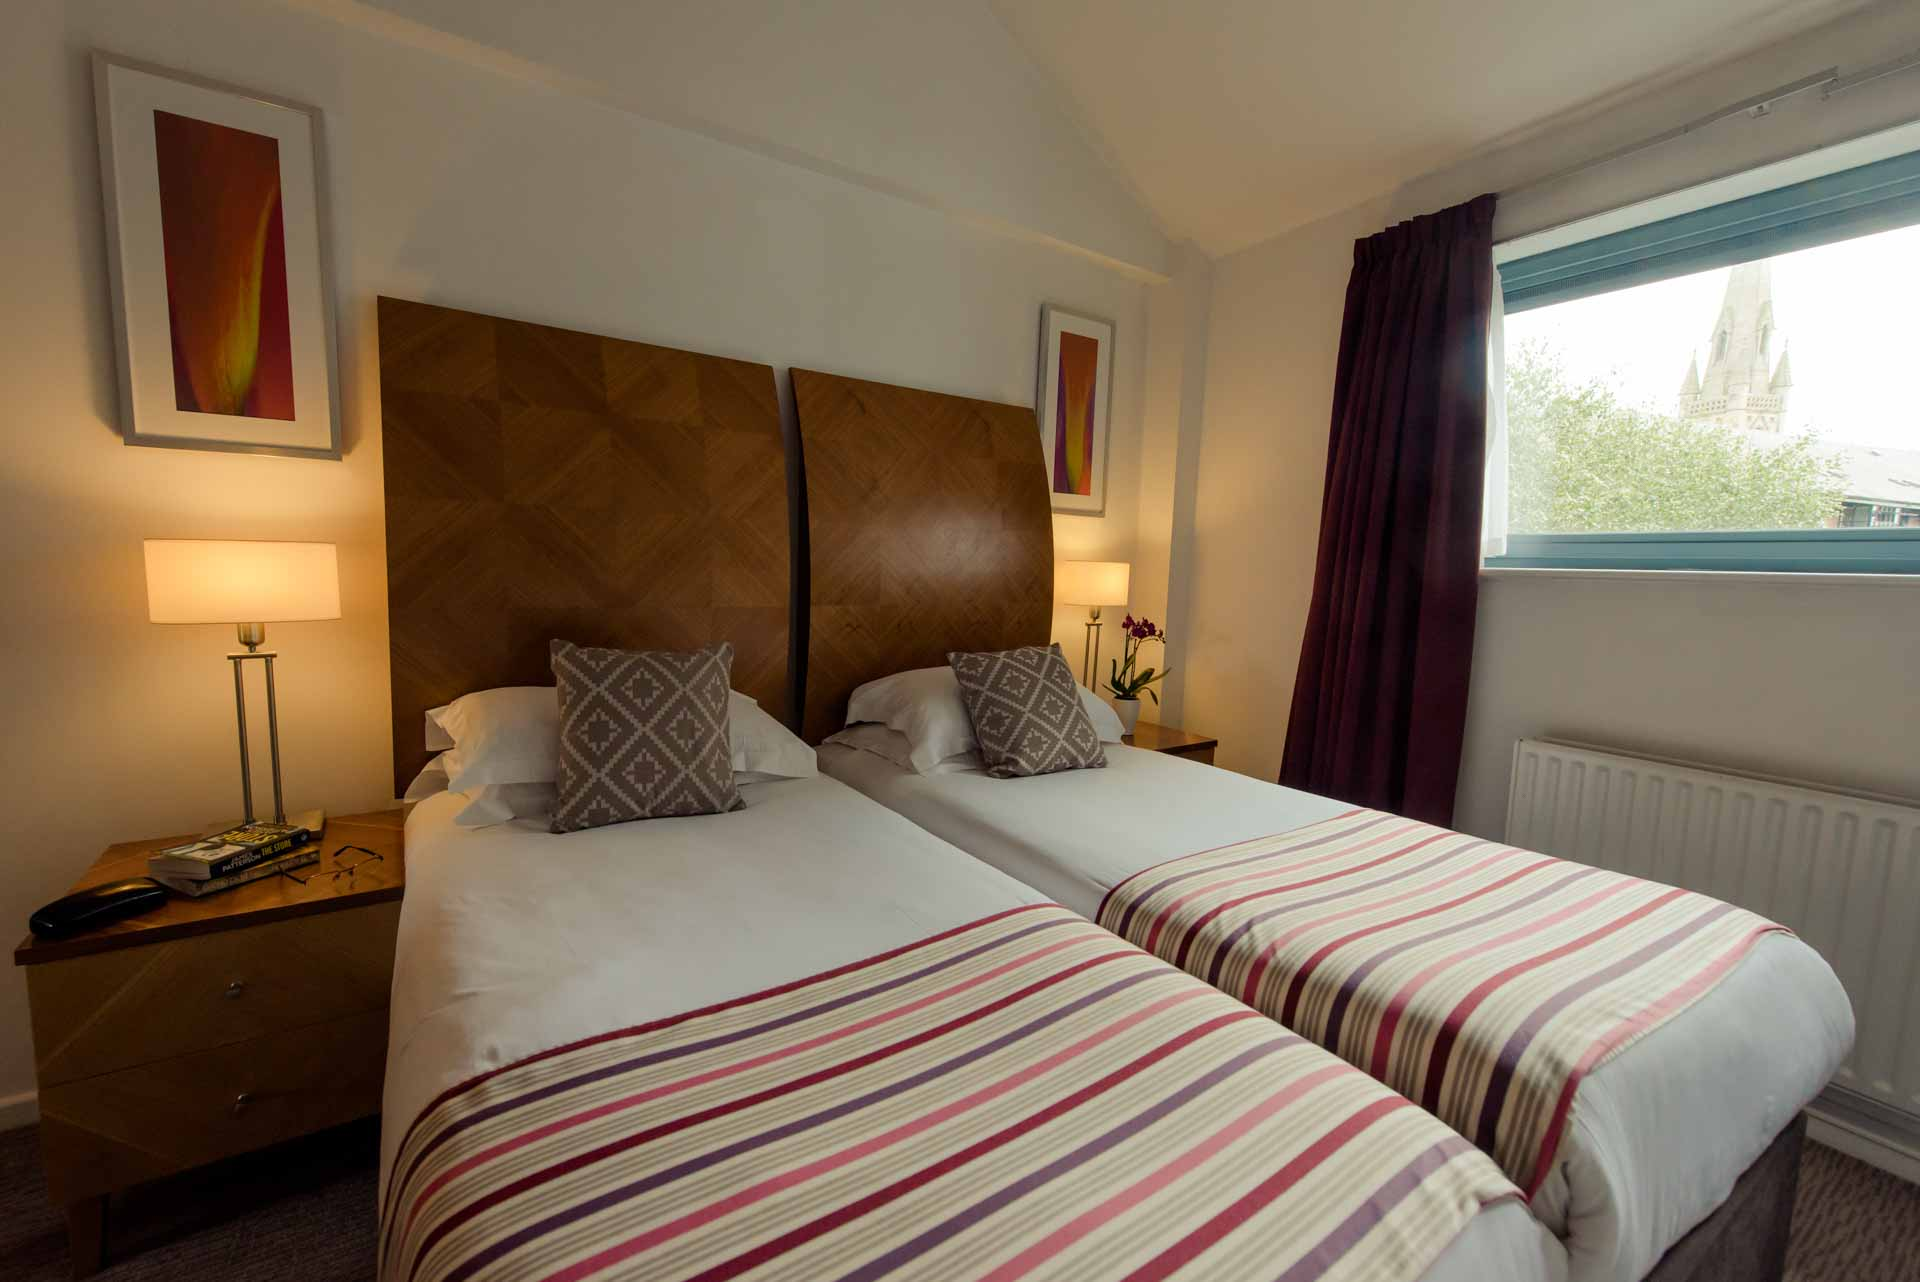 PREMIER SUITES Newcastle two single beds in a double room